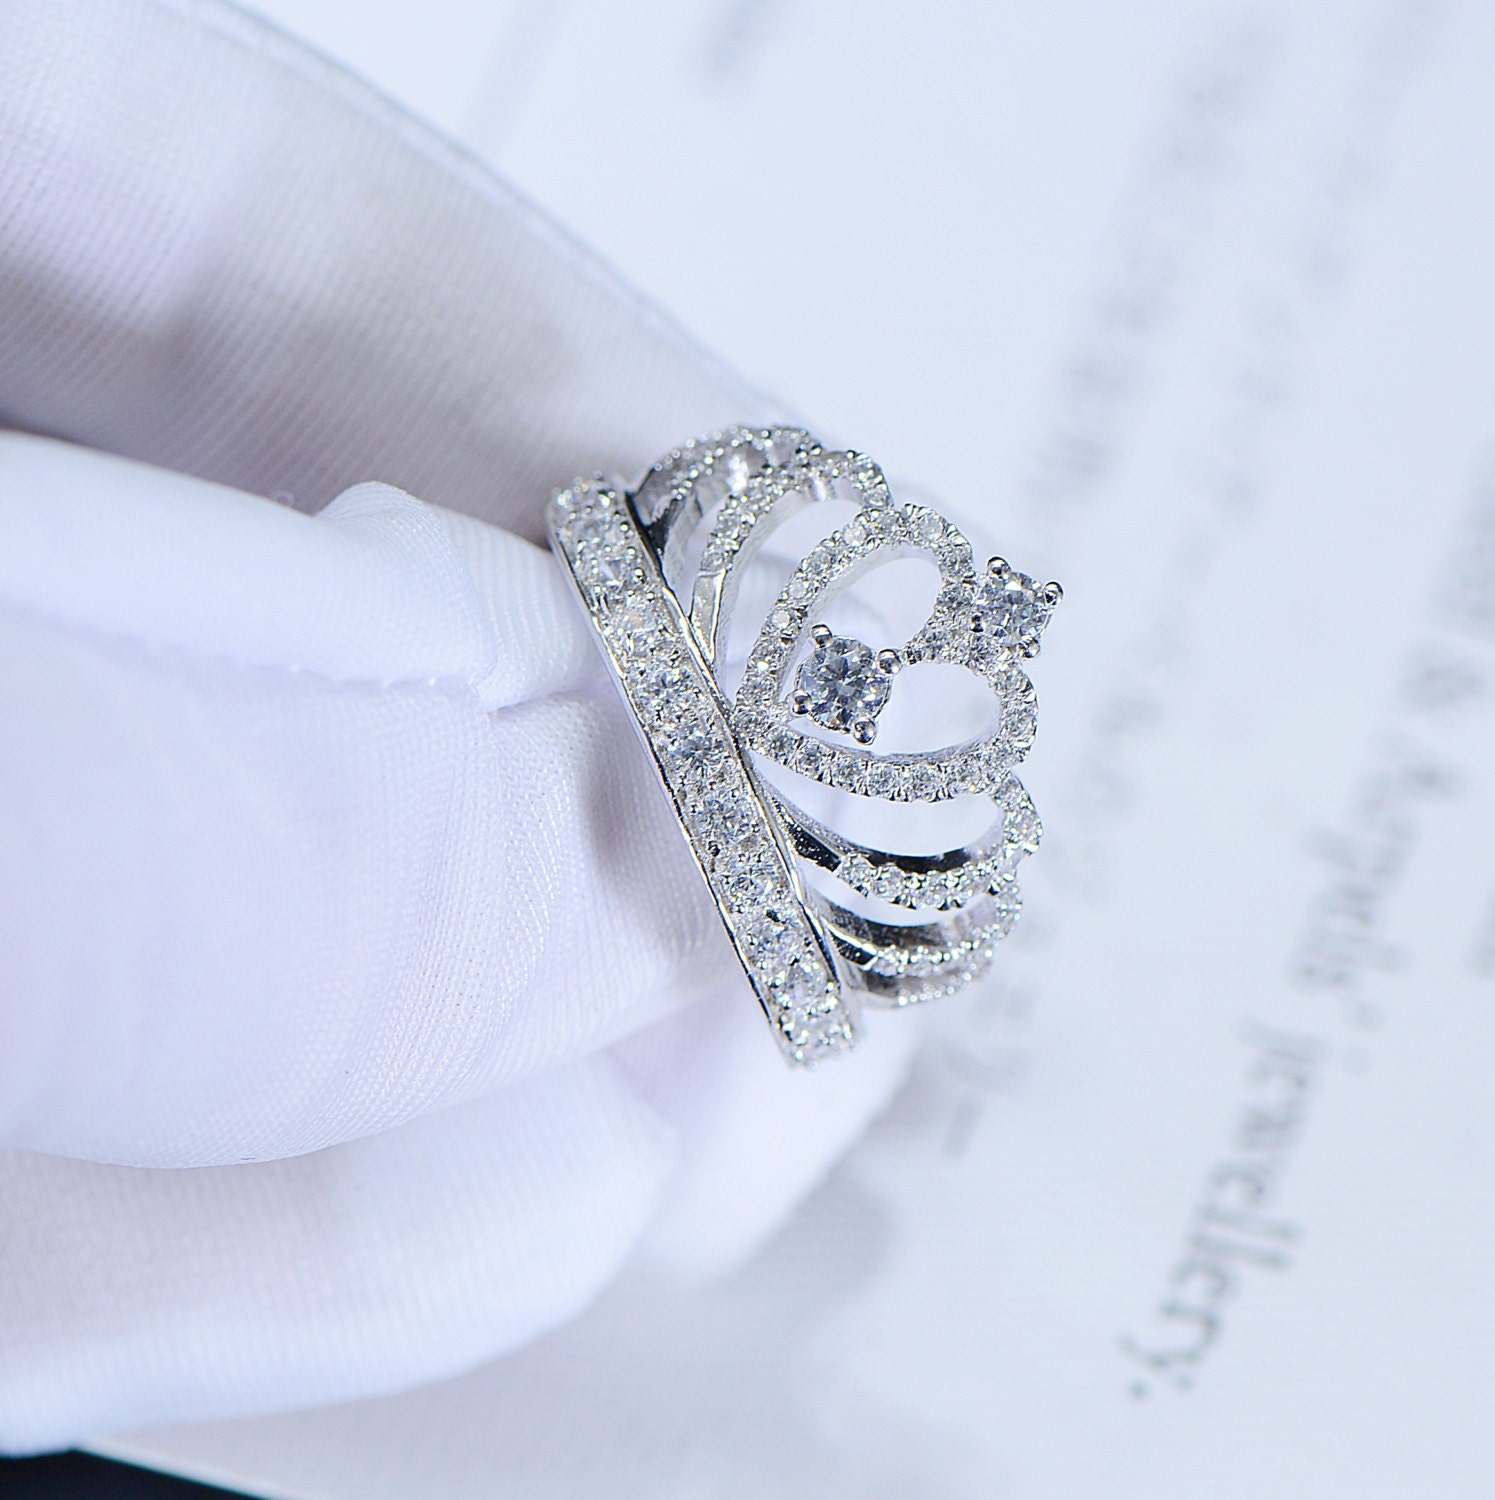 pair diamonds wedding tiara rings engagement of blog diamond ring your with crown